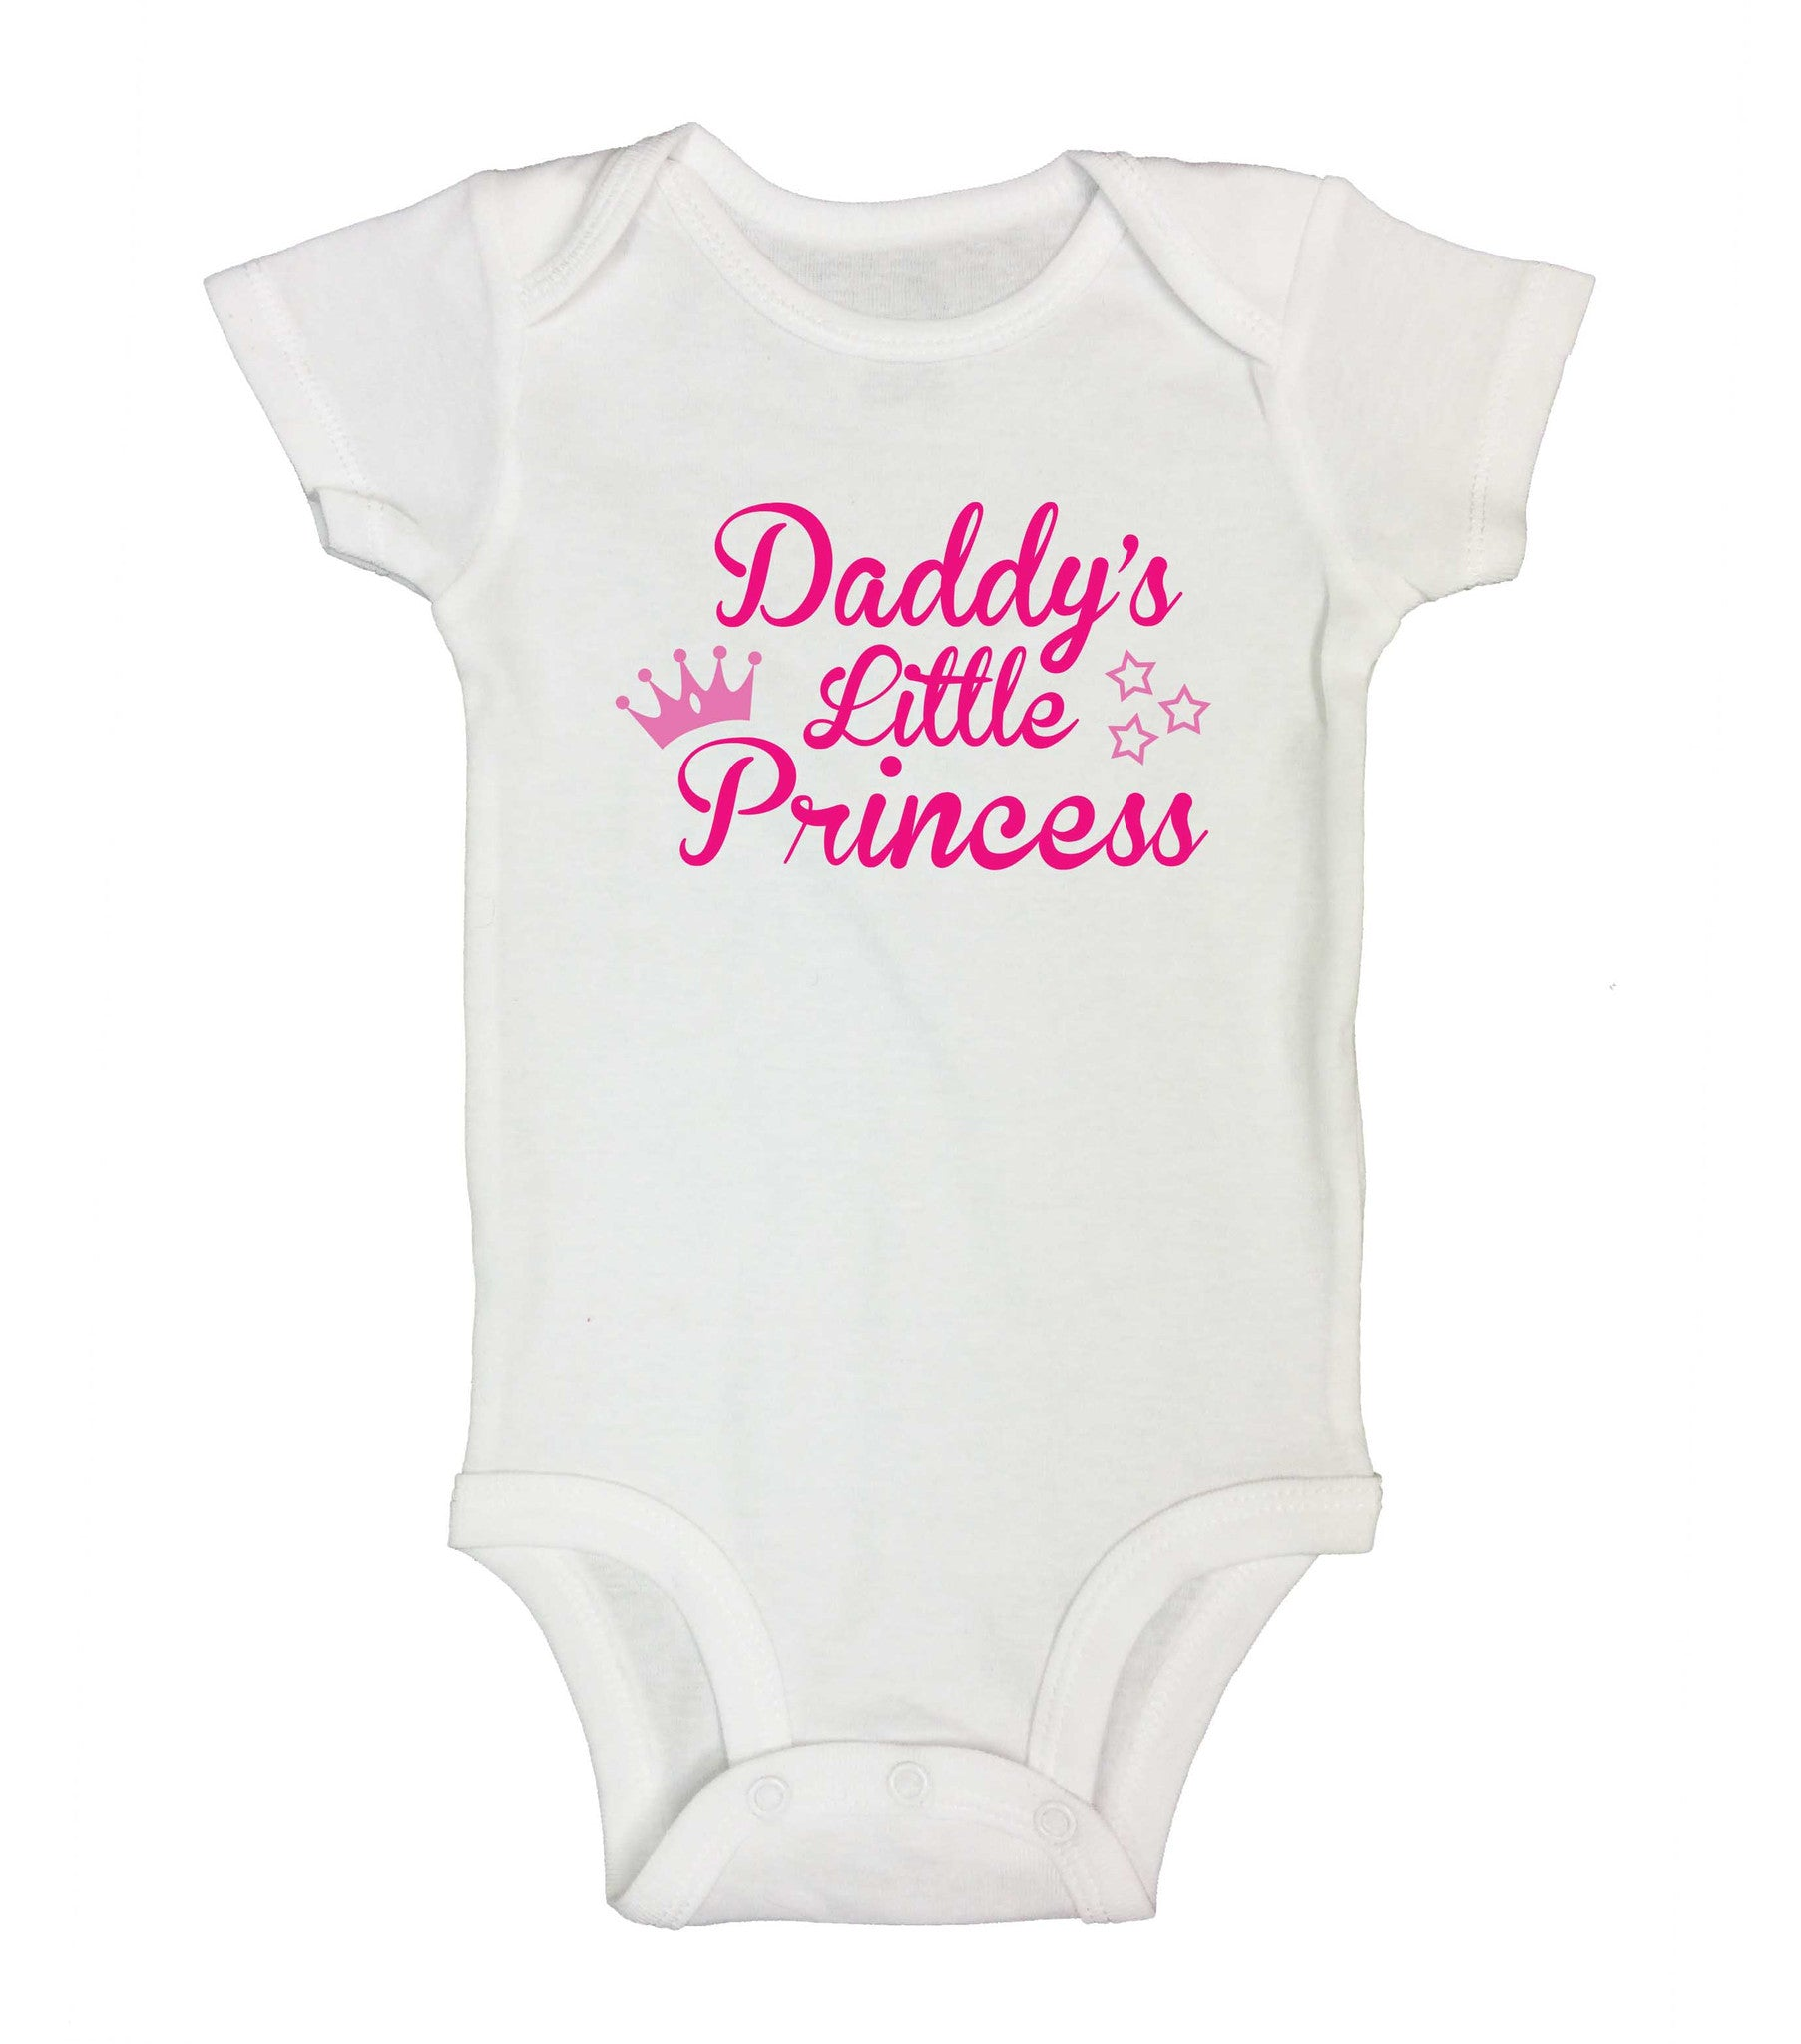 Daddy's Little Princess Funny Kids Onesie - 190 - Funny Shirts Tank Tops Burnouts and Triblends  - 2